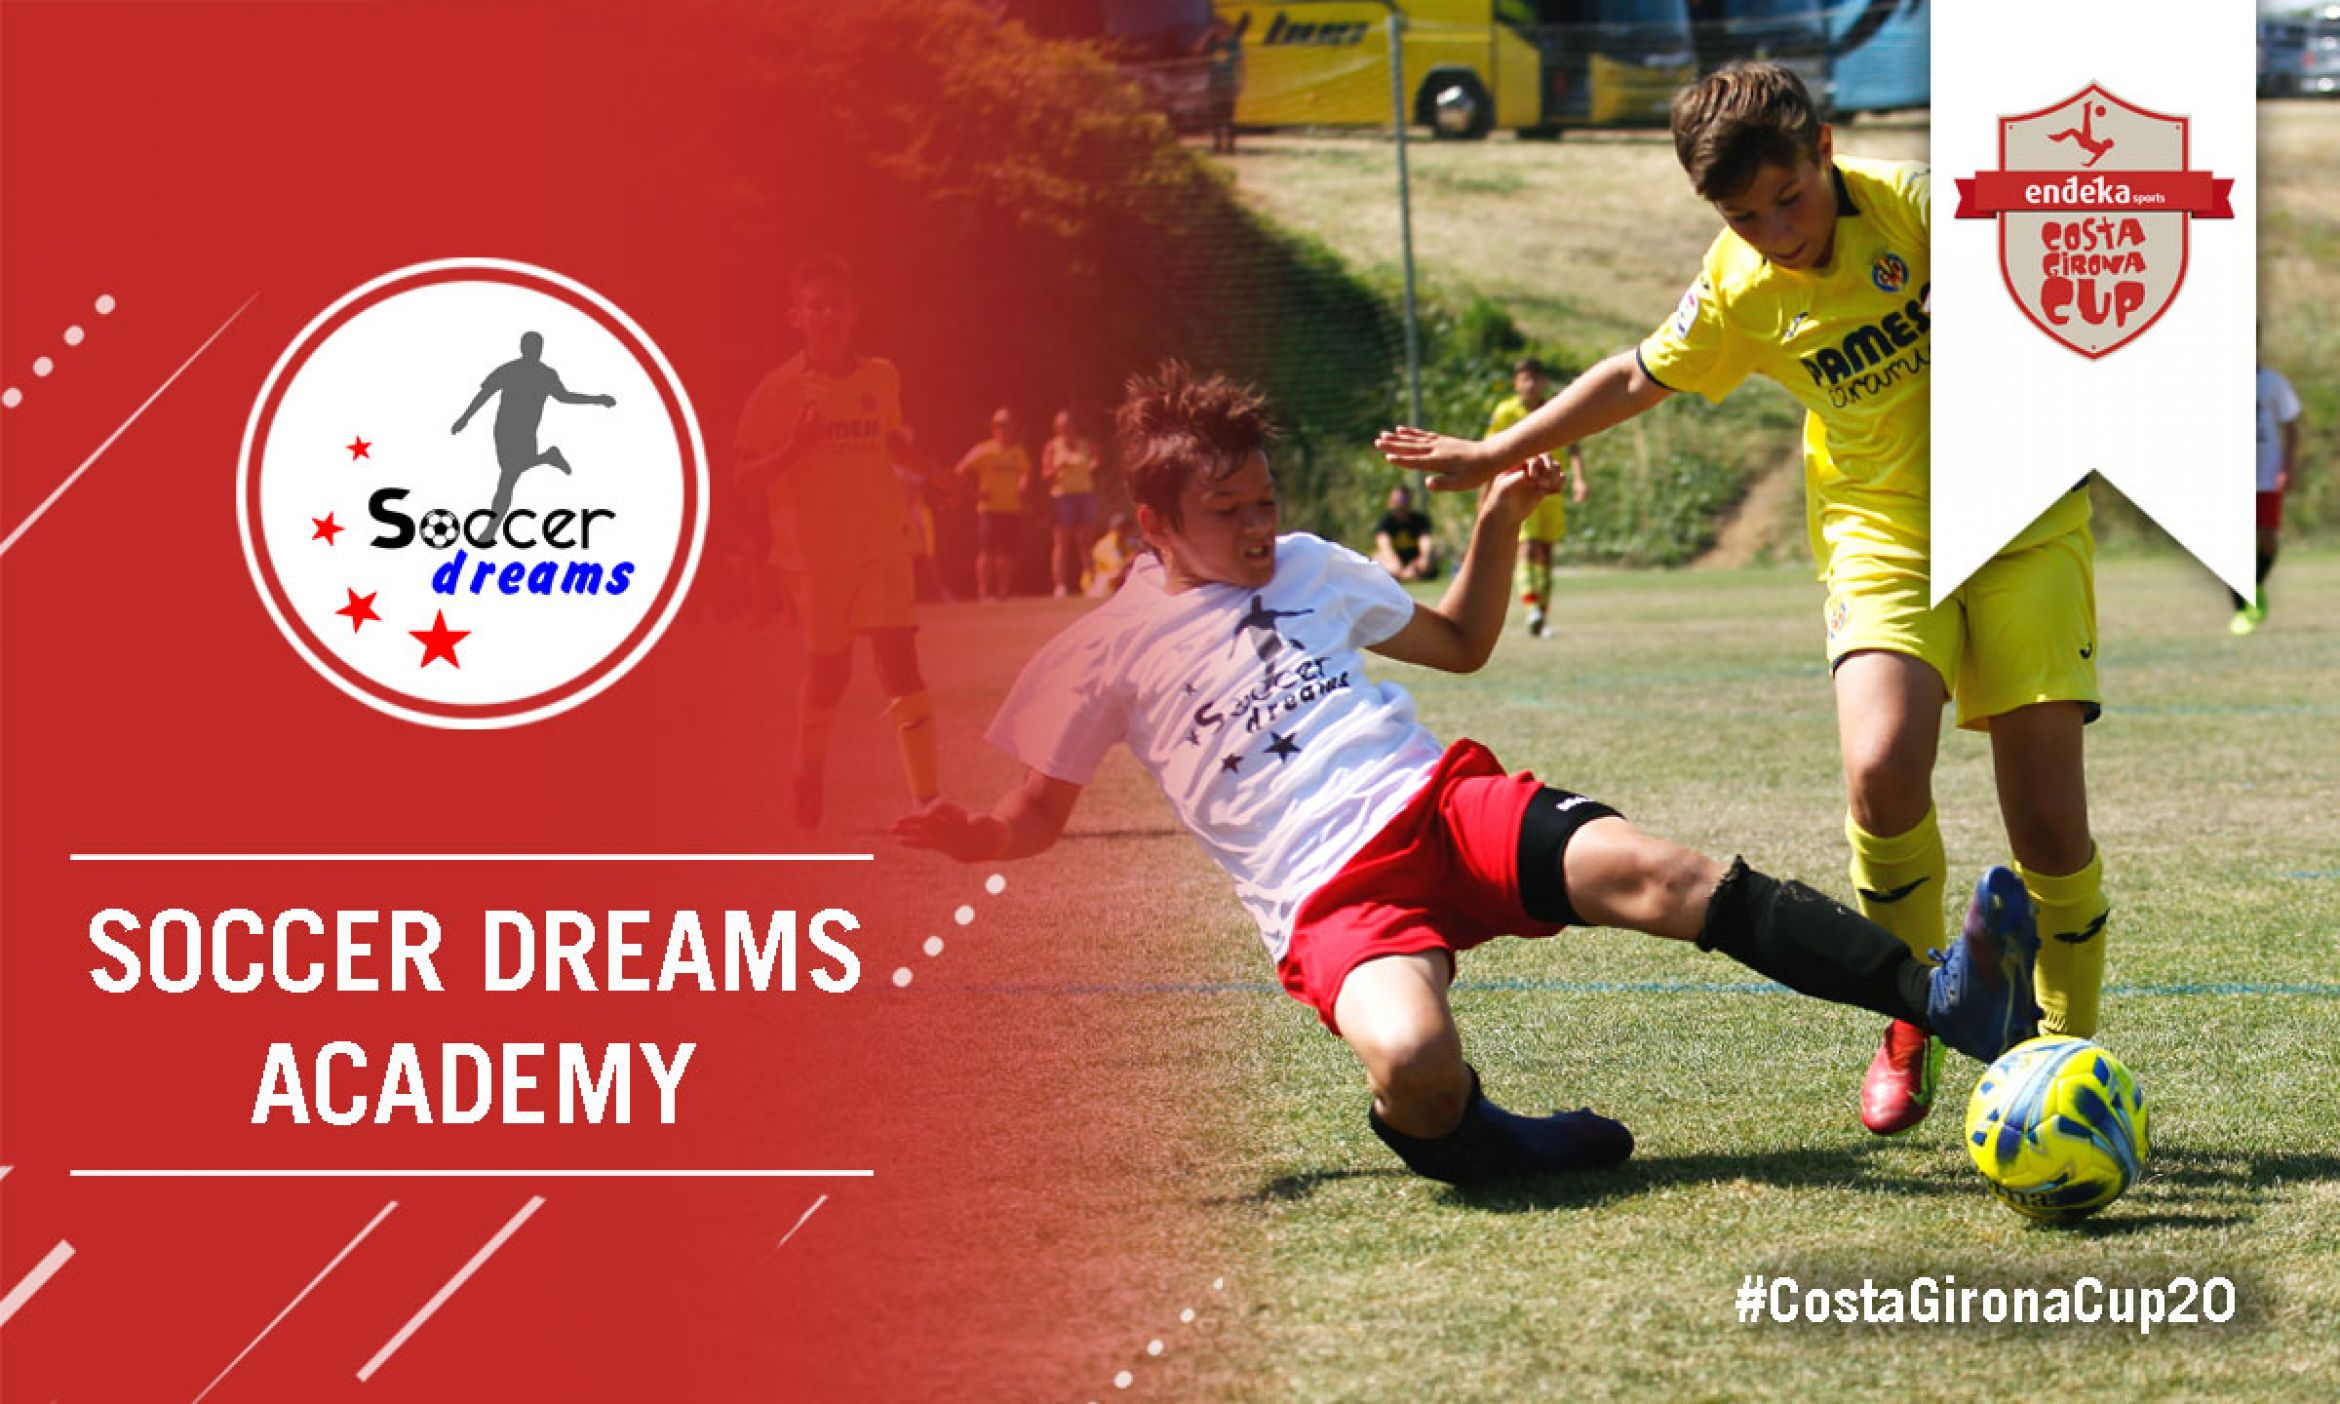 ¡CONFIRMADO! LA SOCCER DREAMS ACADEMY REGRESA A GIRONA